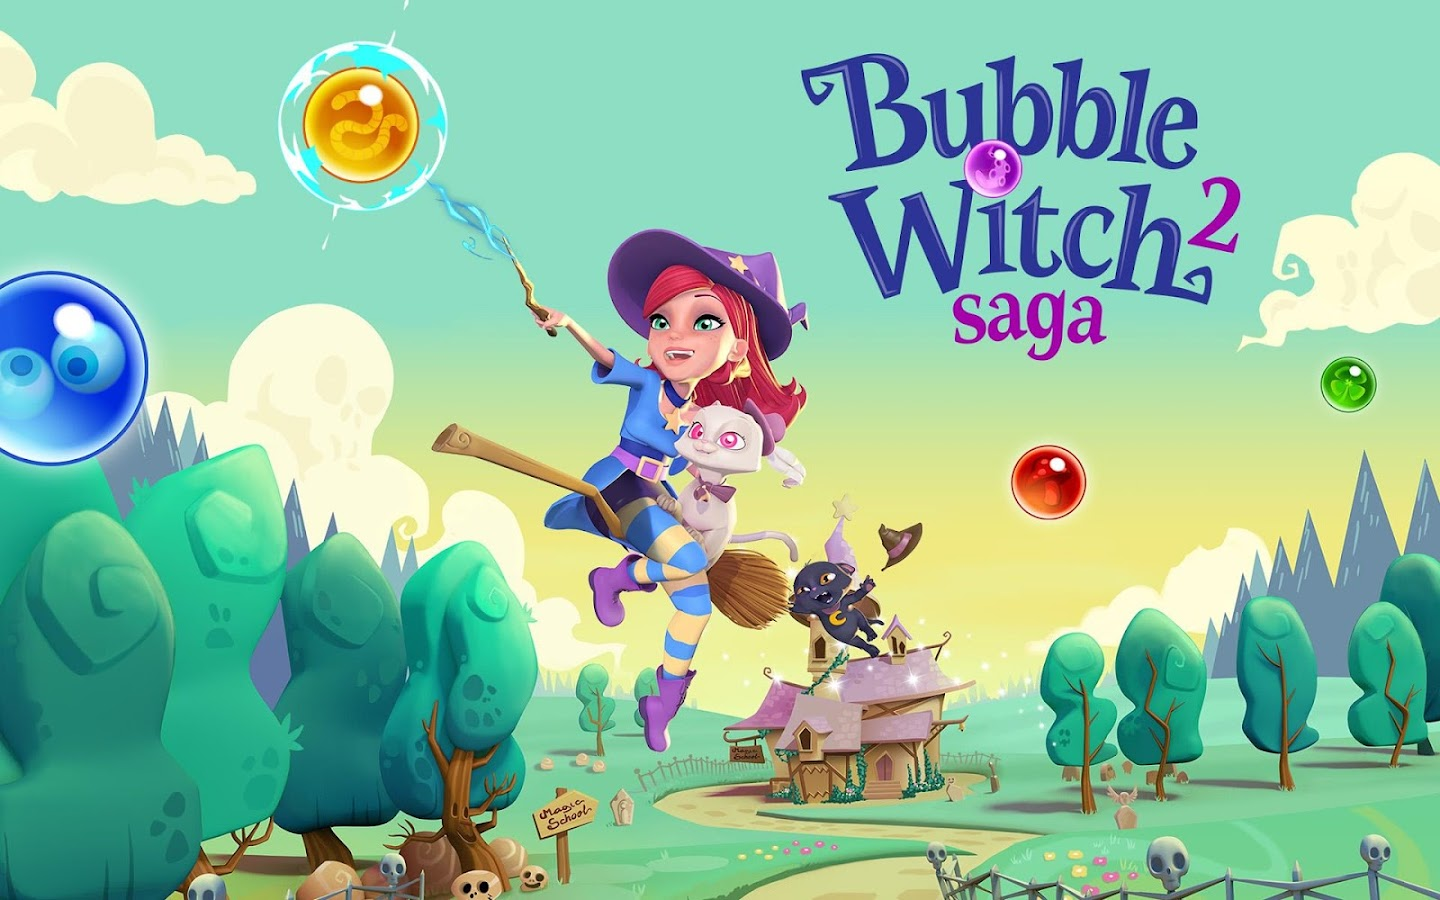 Bubble Witch 2 Saga Screenshot 16